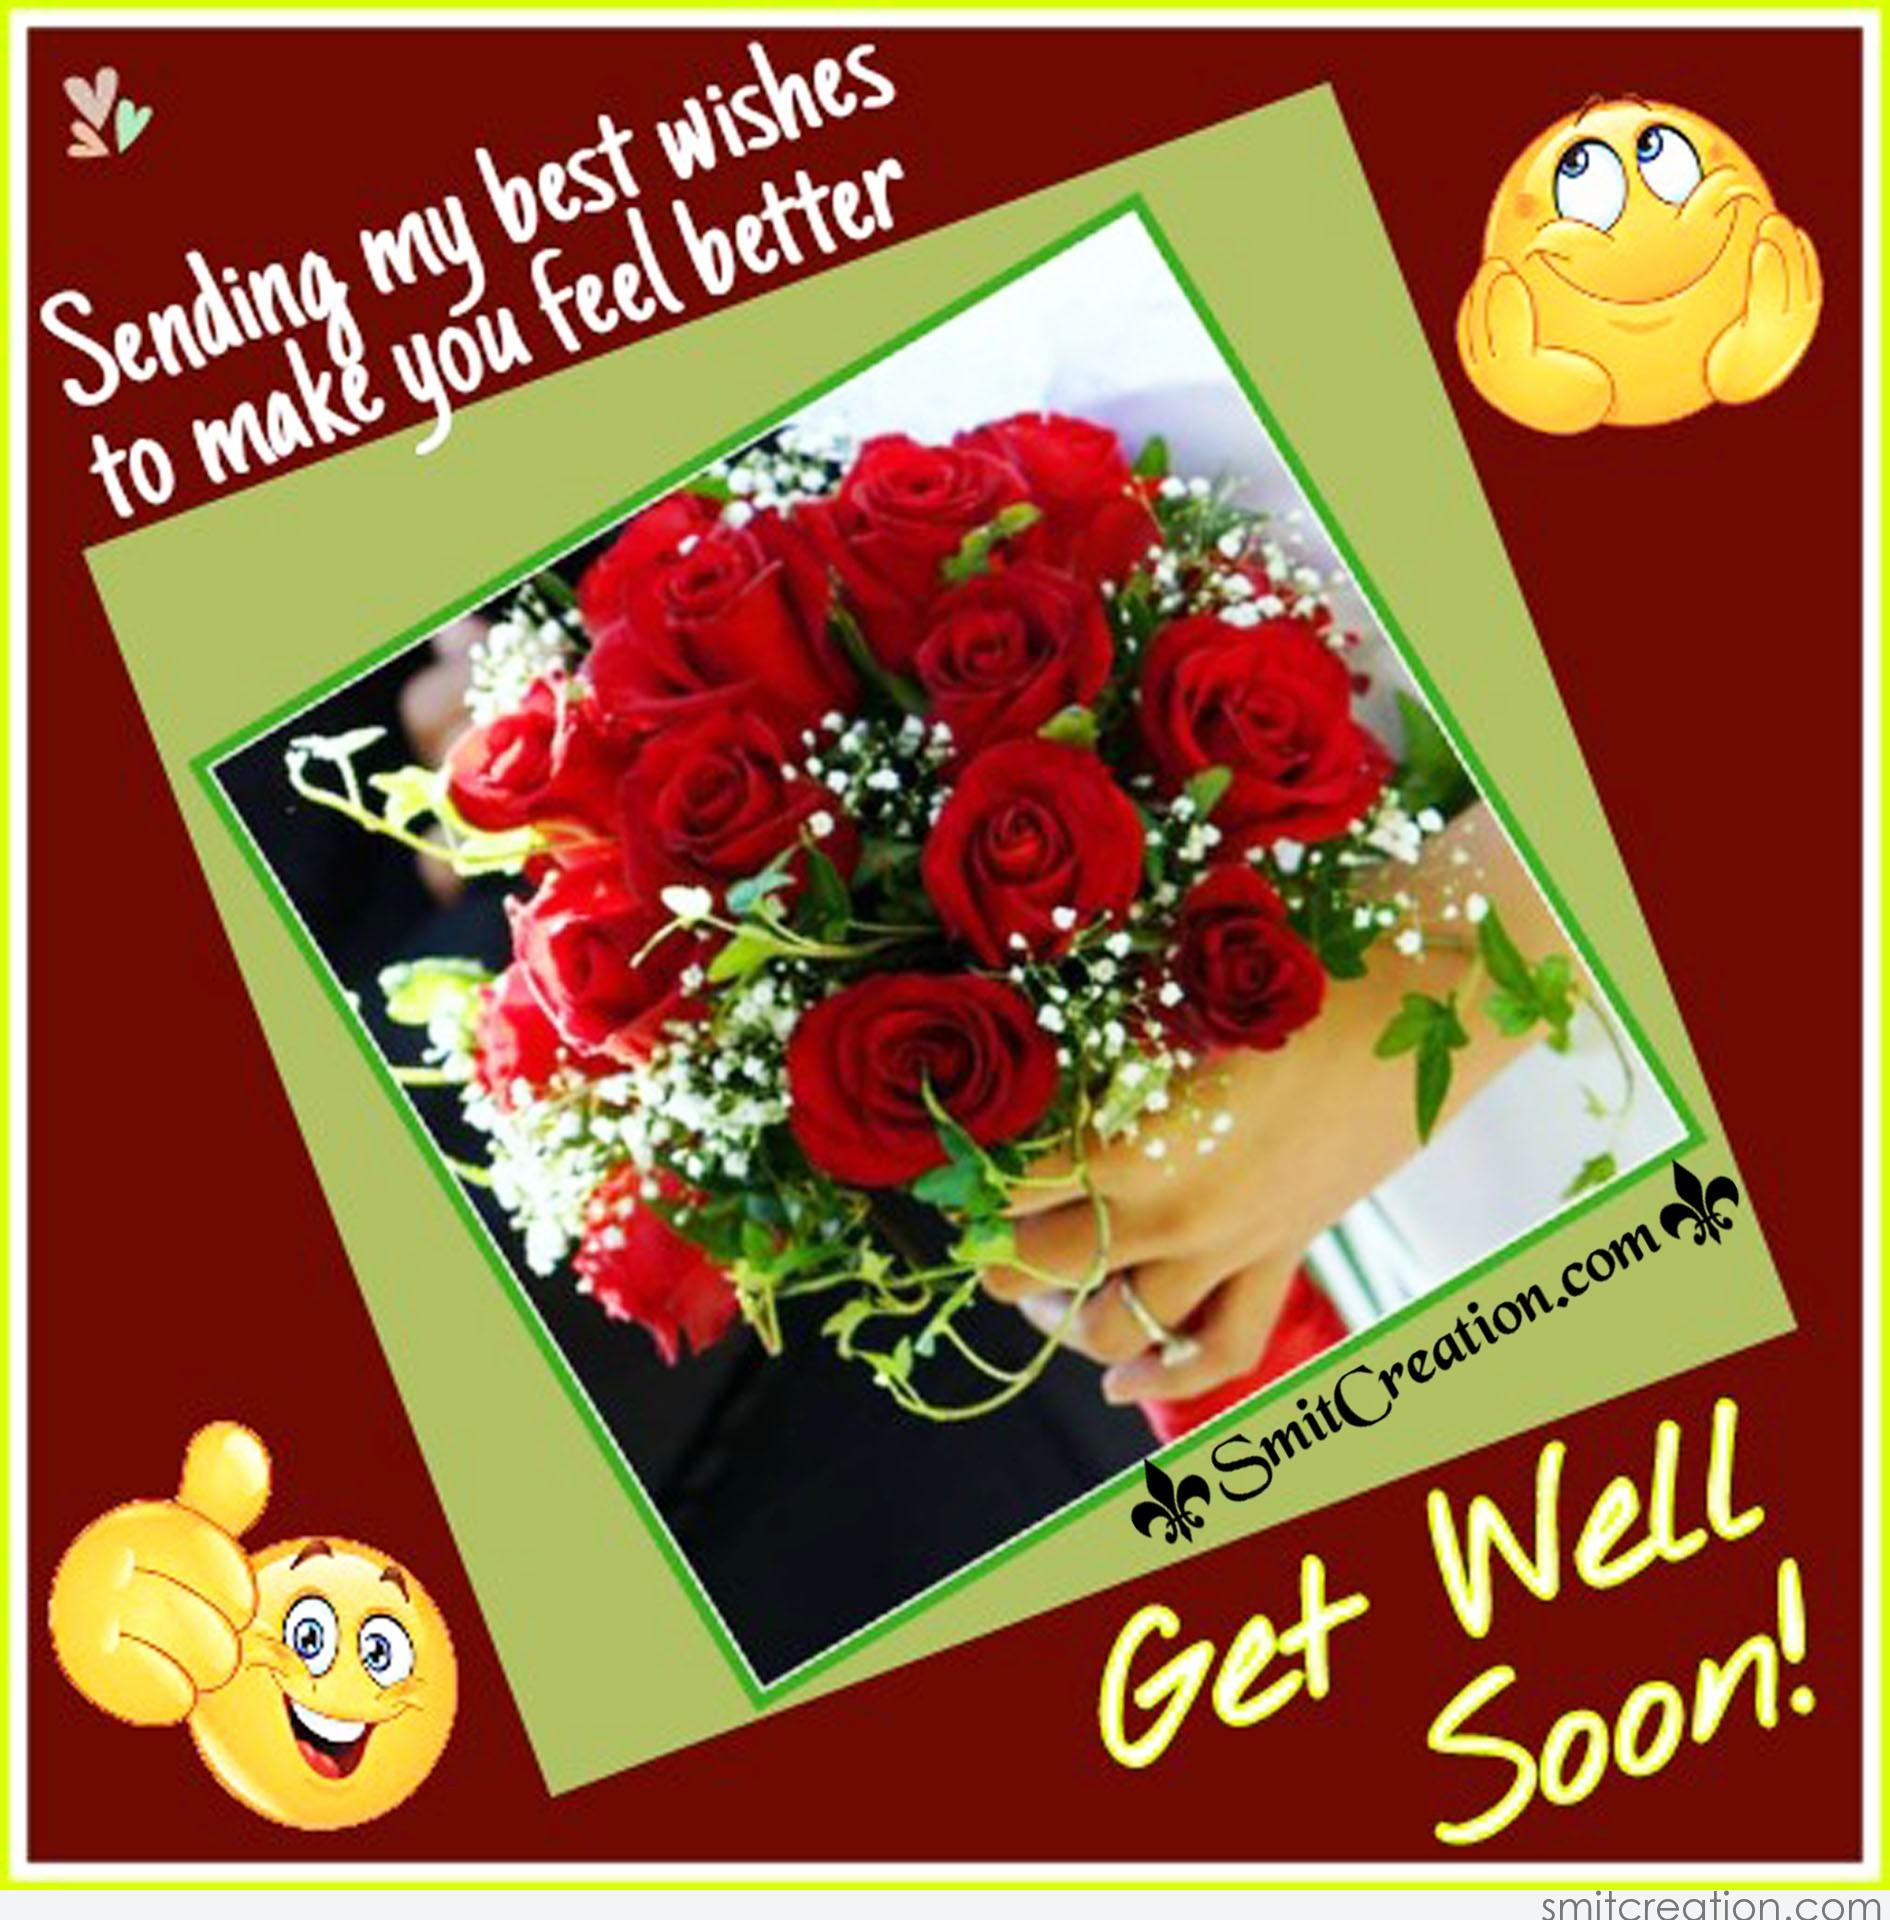 Get Well Soon Pictures And Graphics Smitcreation